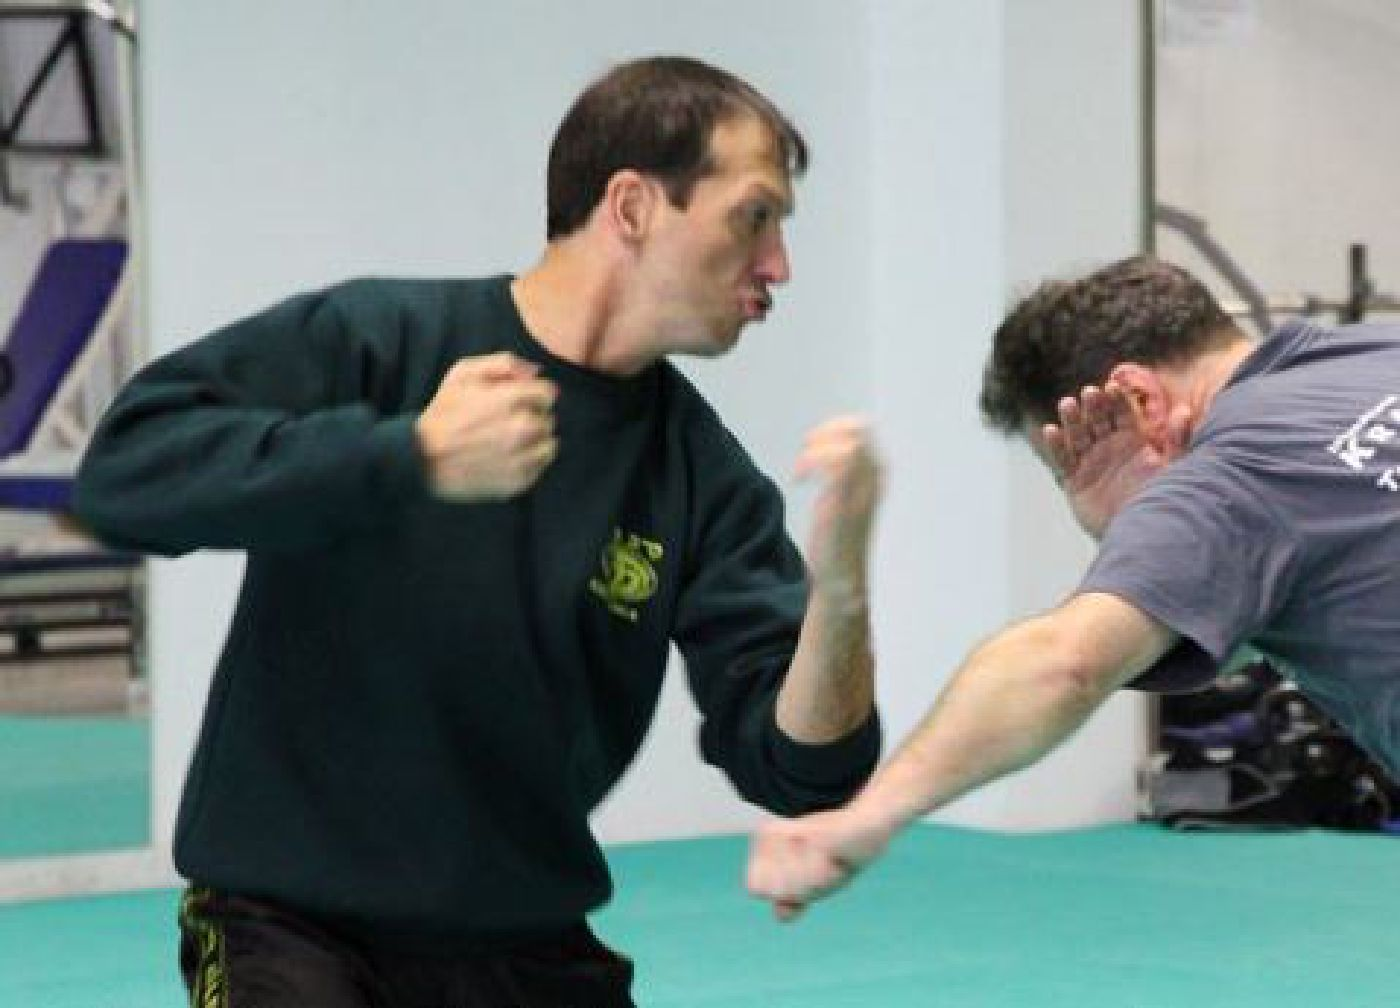 Krav Maga Instructor demonstrating how to deflect an attacker's punch to counter